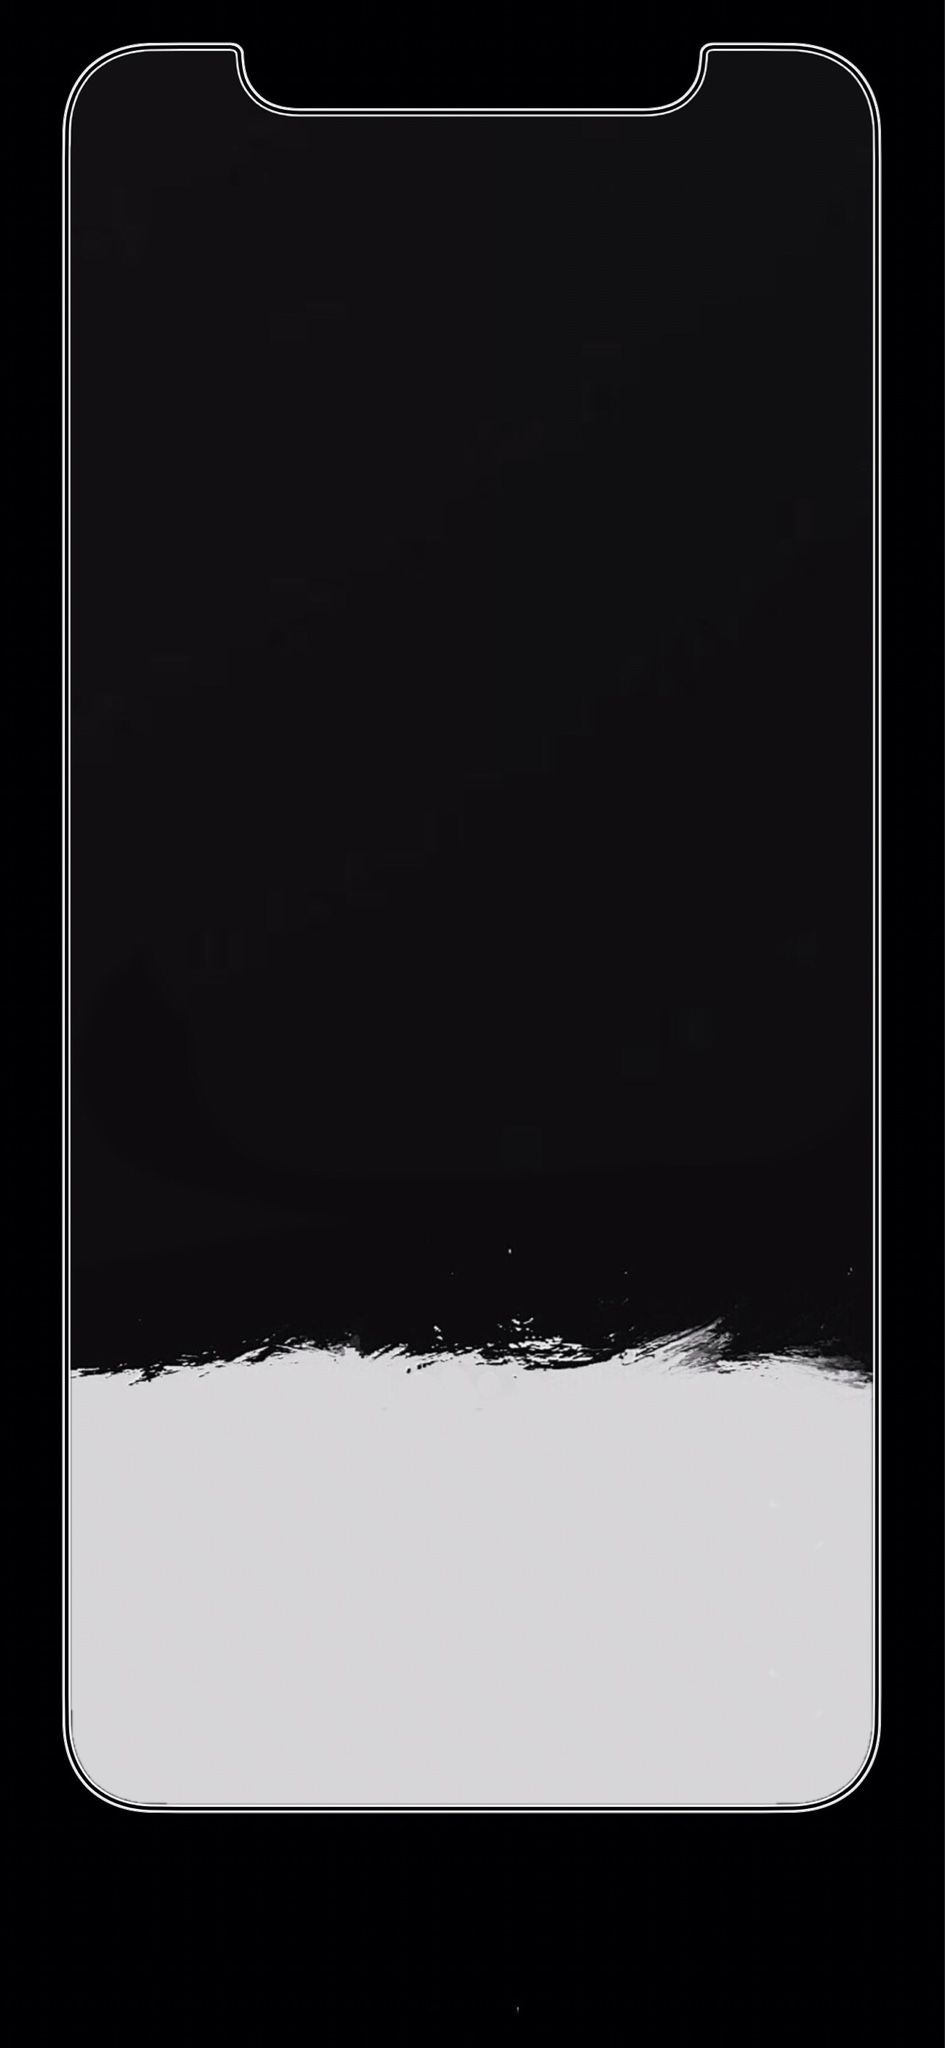 The iPhone X/Xs Wallpaper Thread Page 51 iPhone, iPad